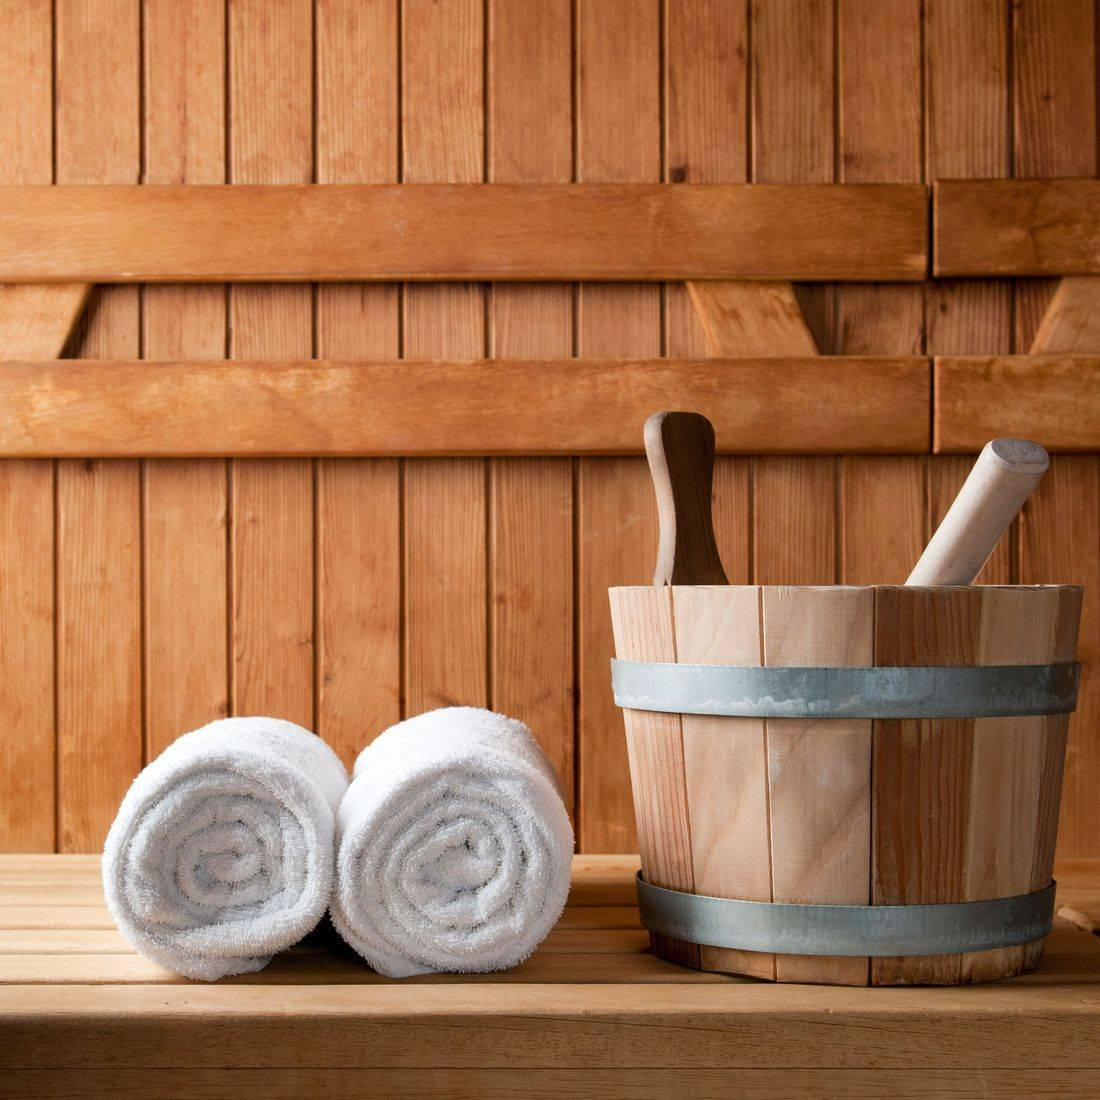 Picture of a sauna bucket and towels